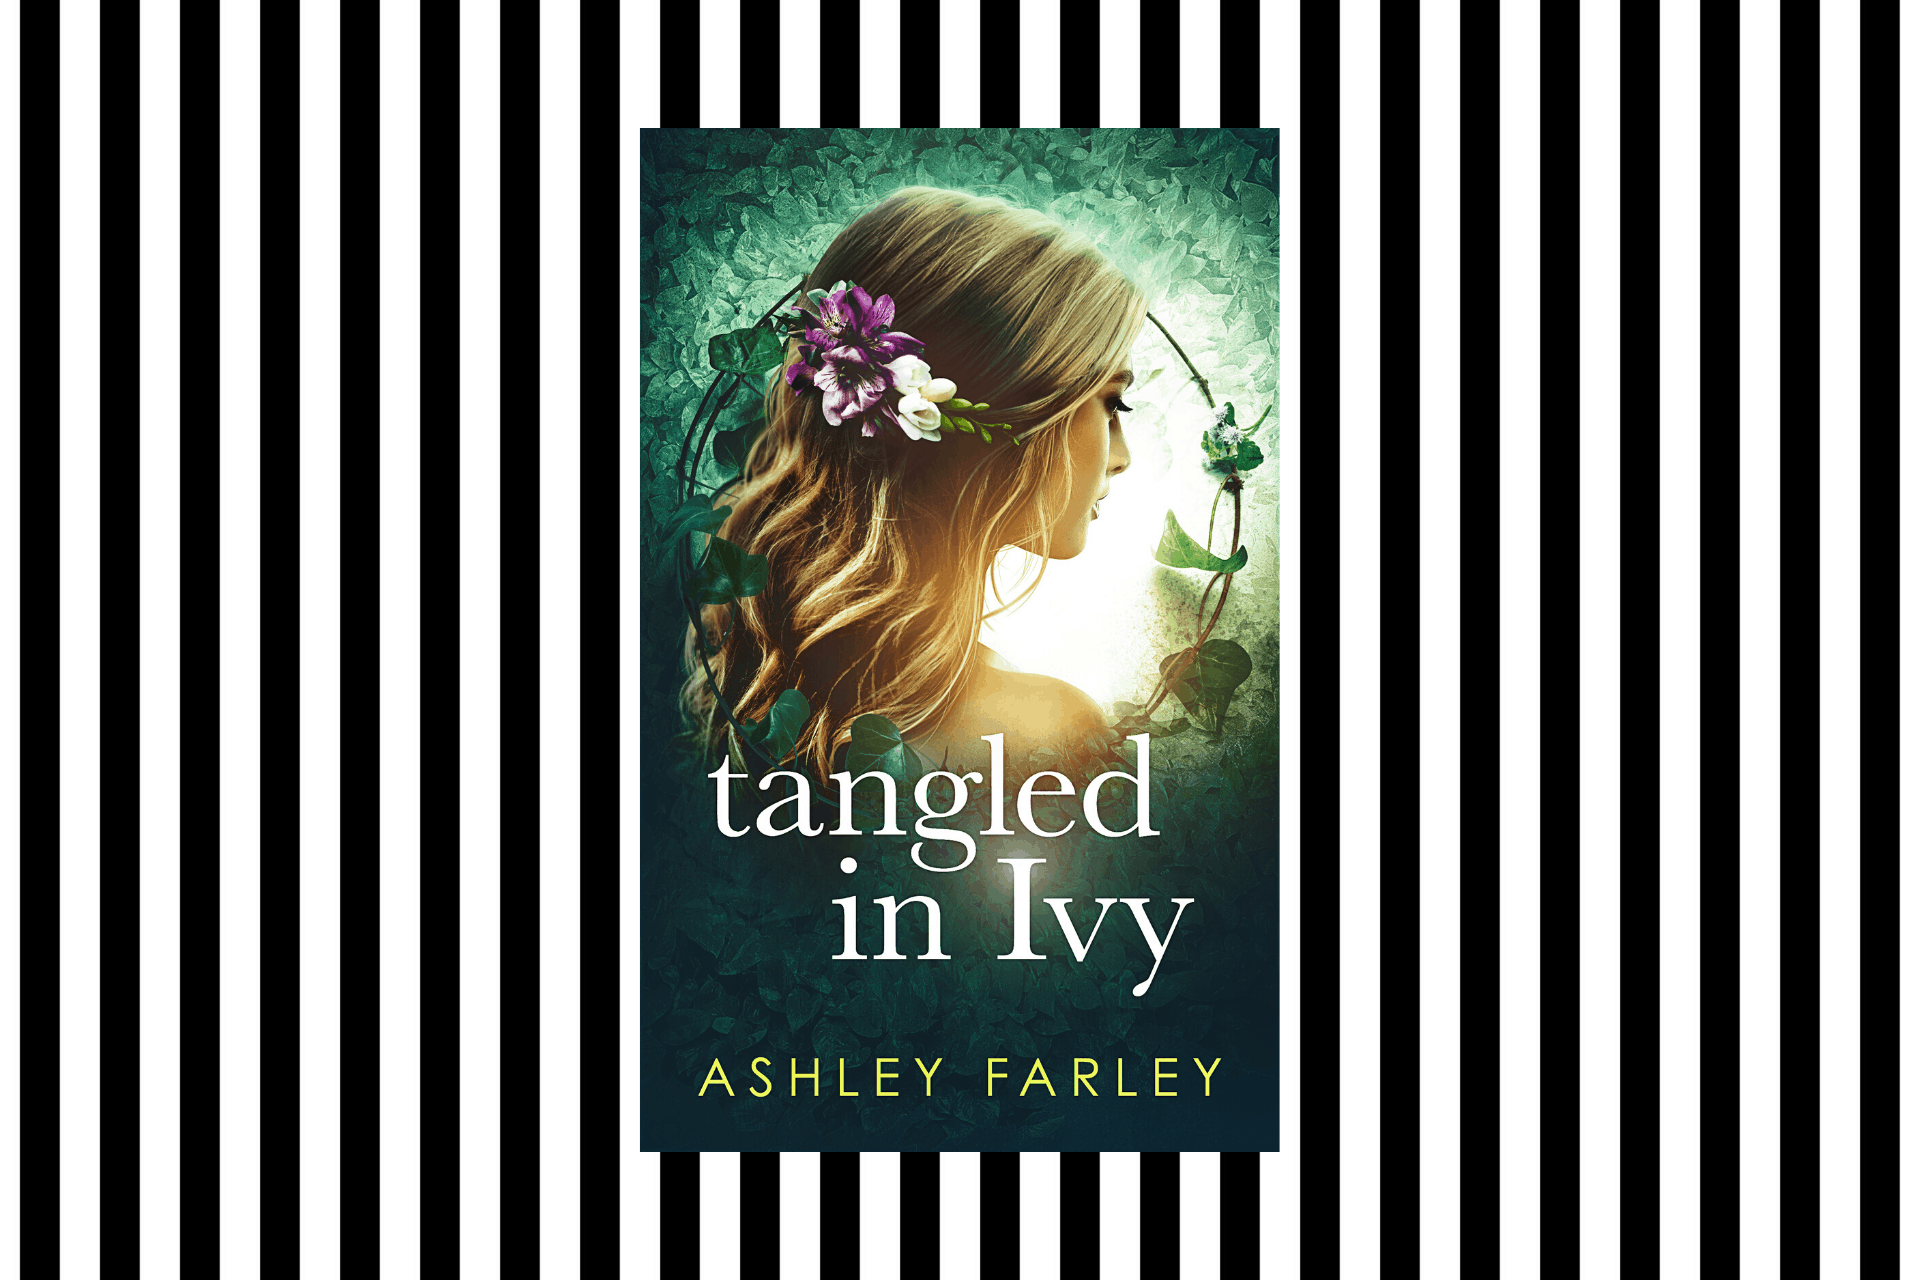 The cover of Tangled in Ivy by Ashley Farley